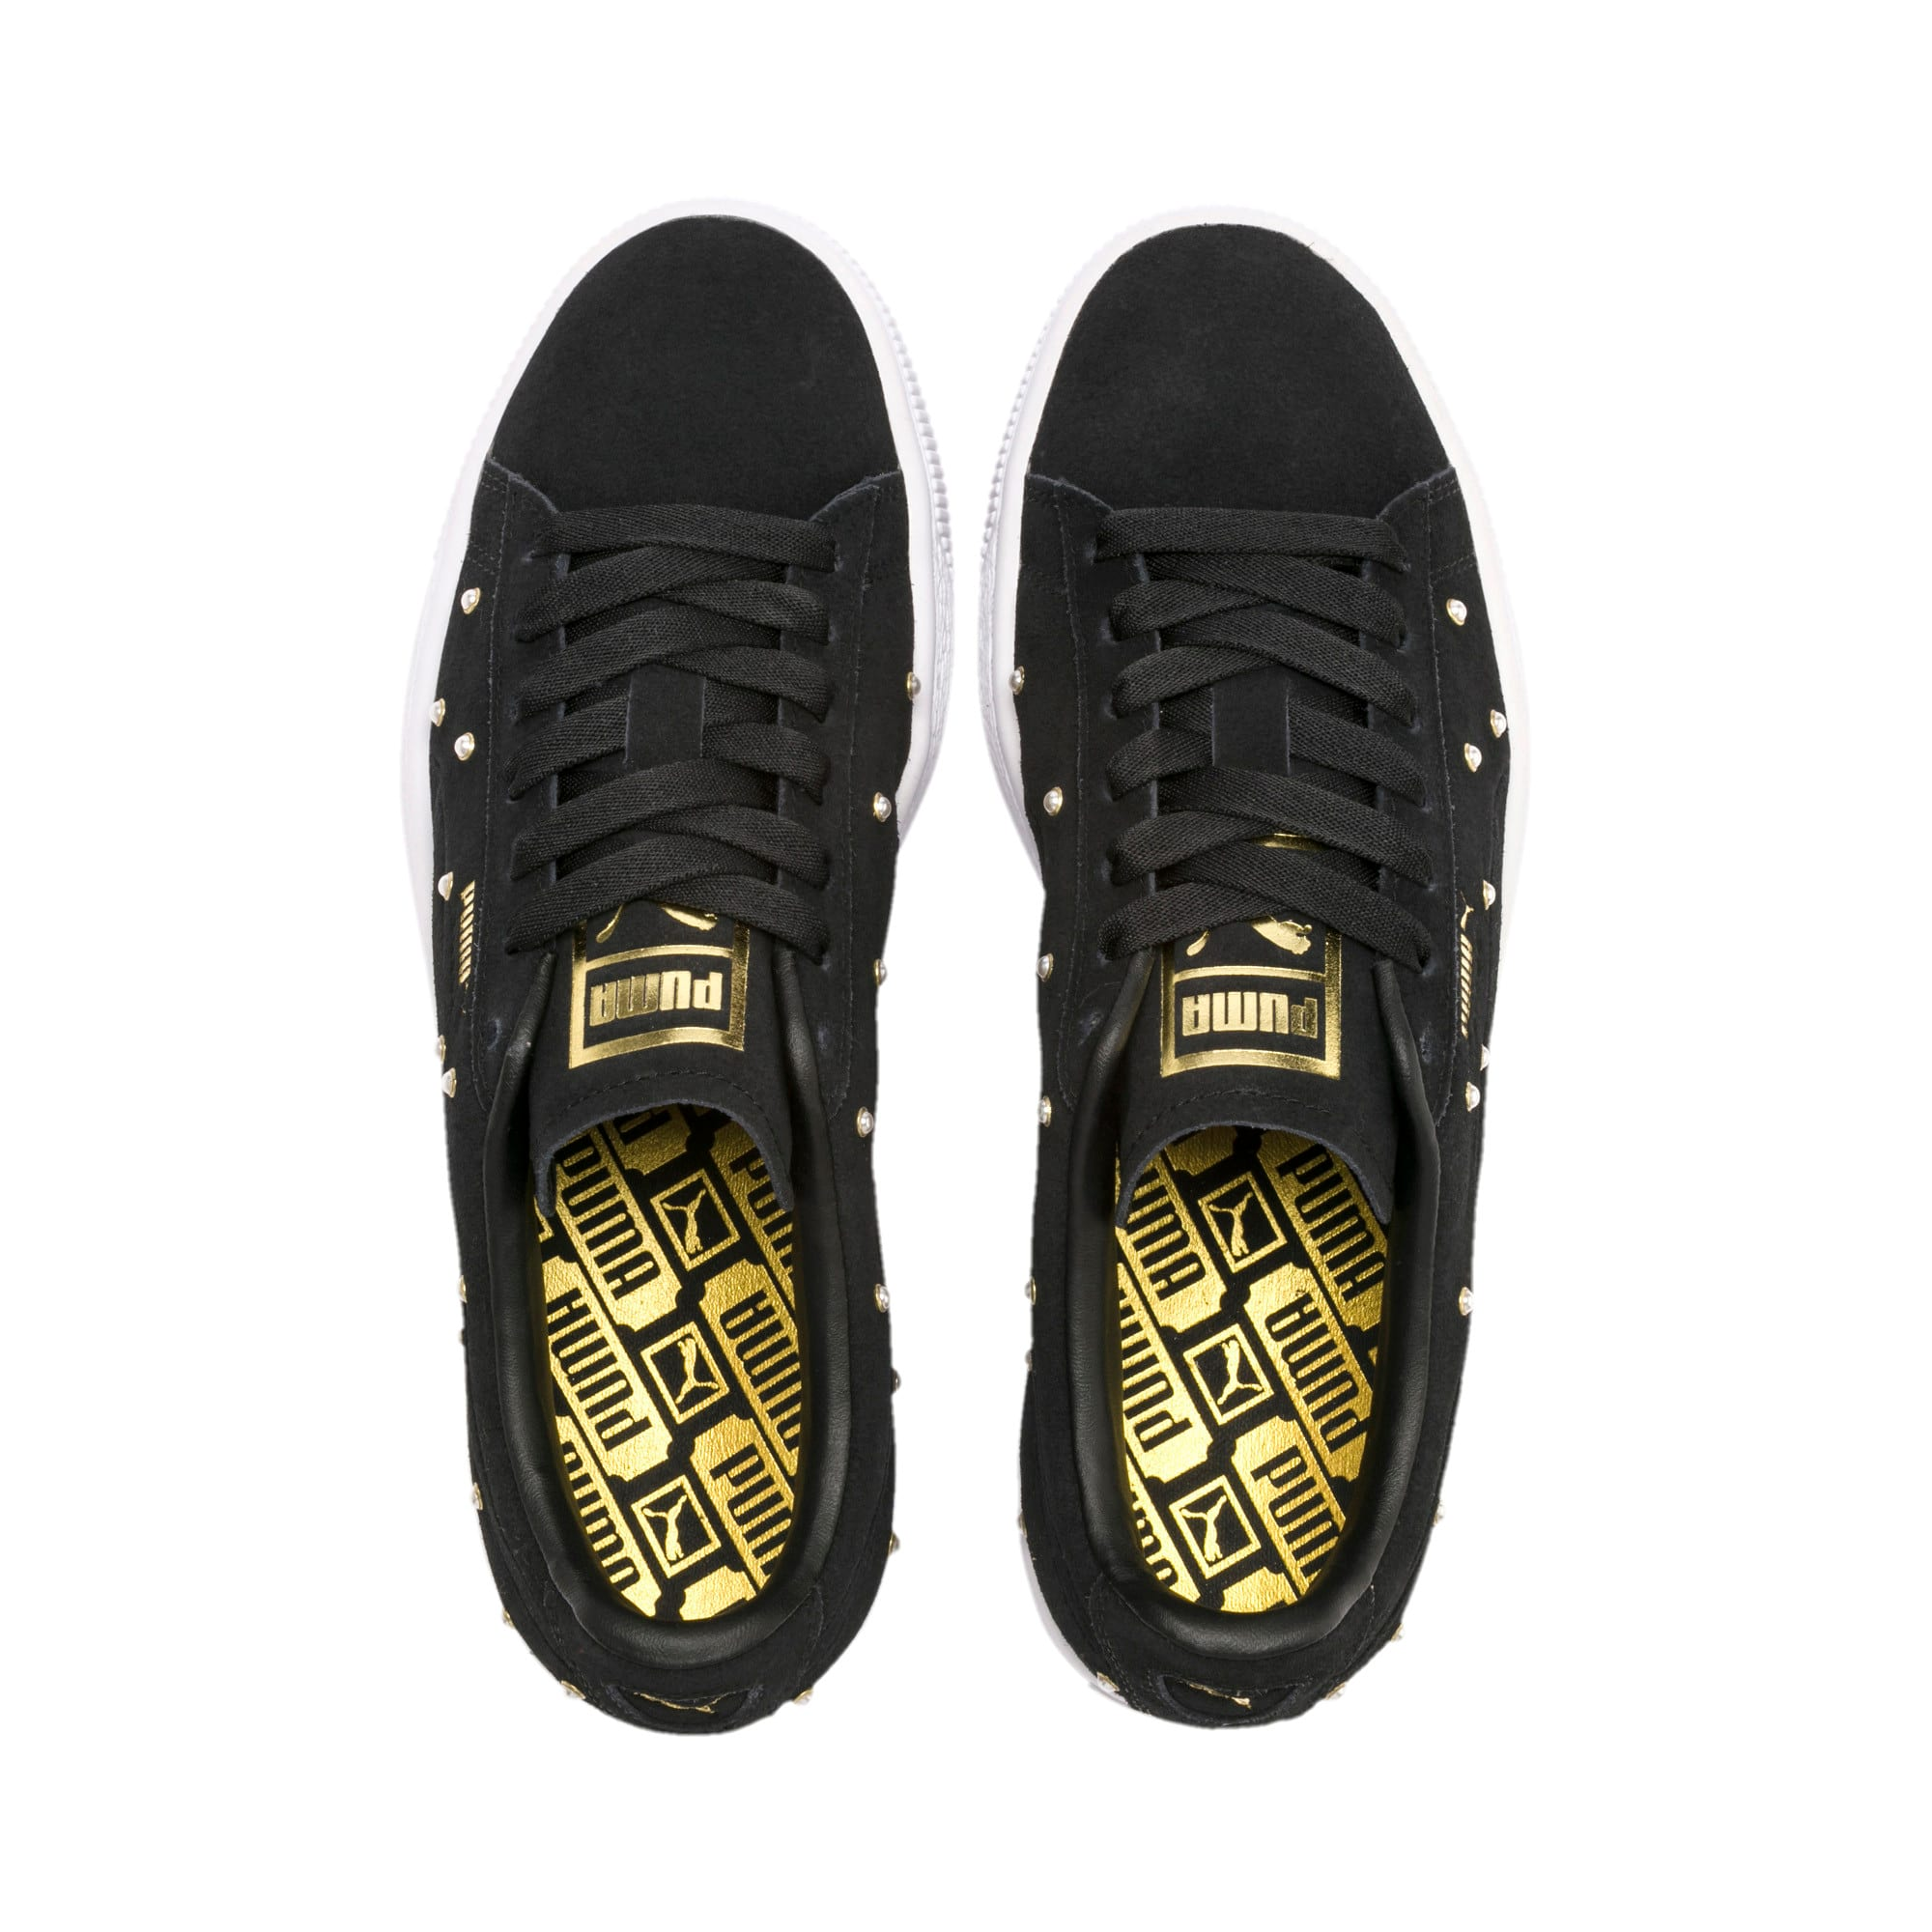 Thumbnail 7 of Pearl Studs Suede Women's Trainers, Puma Black-Puma Team Gold, medium